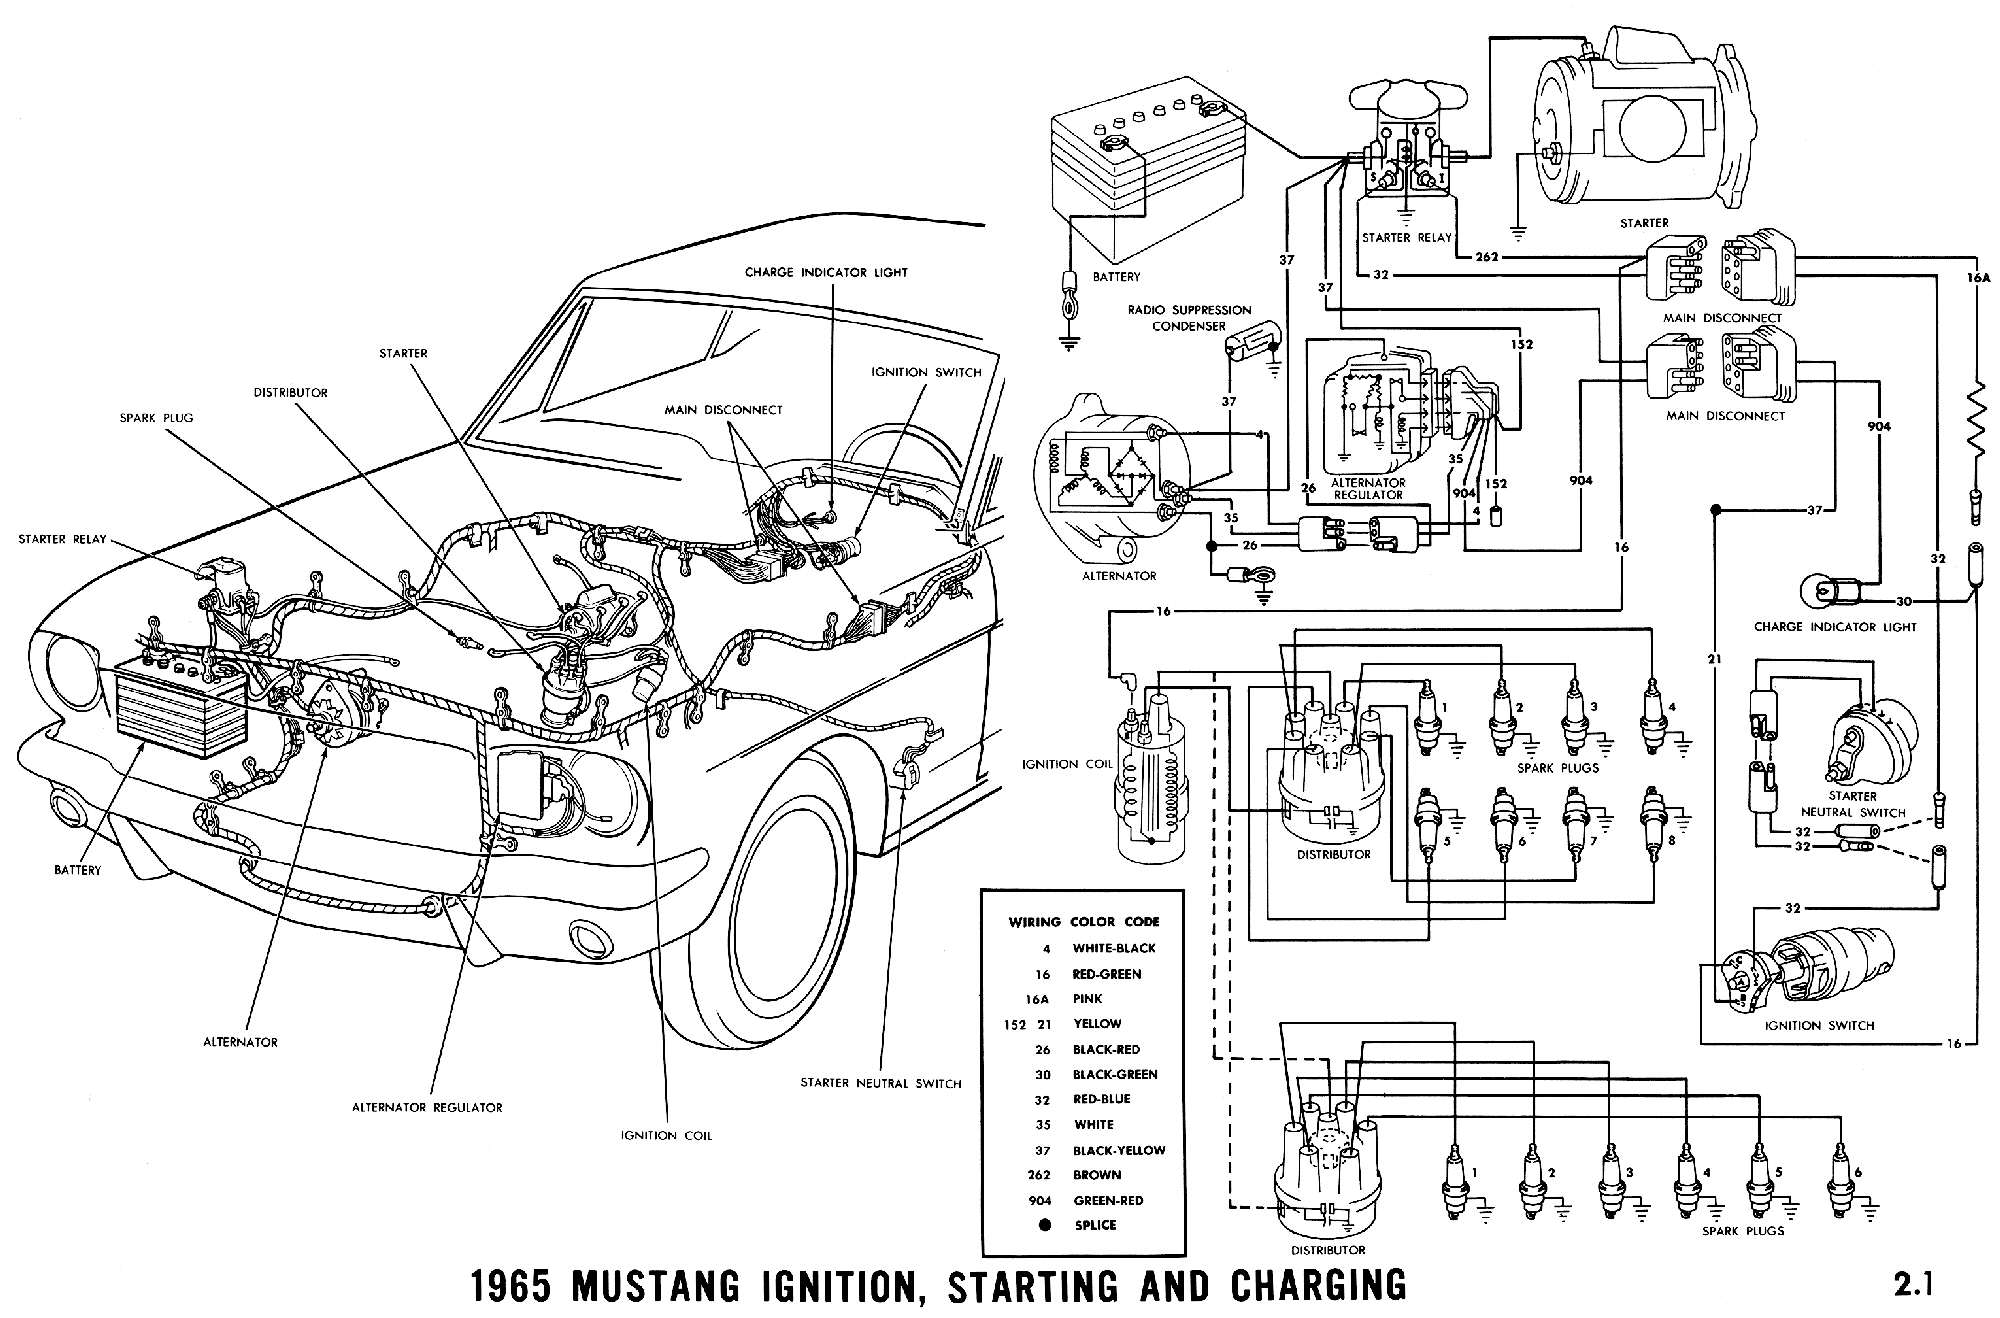 1965c 1965 mustang wiring diagrams average joe restoration 68 Mustang Wiring Diagram at webbmarketing.co